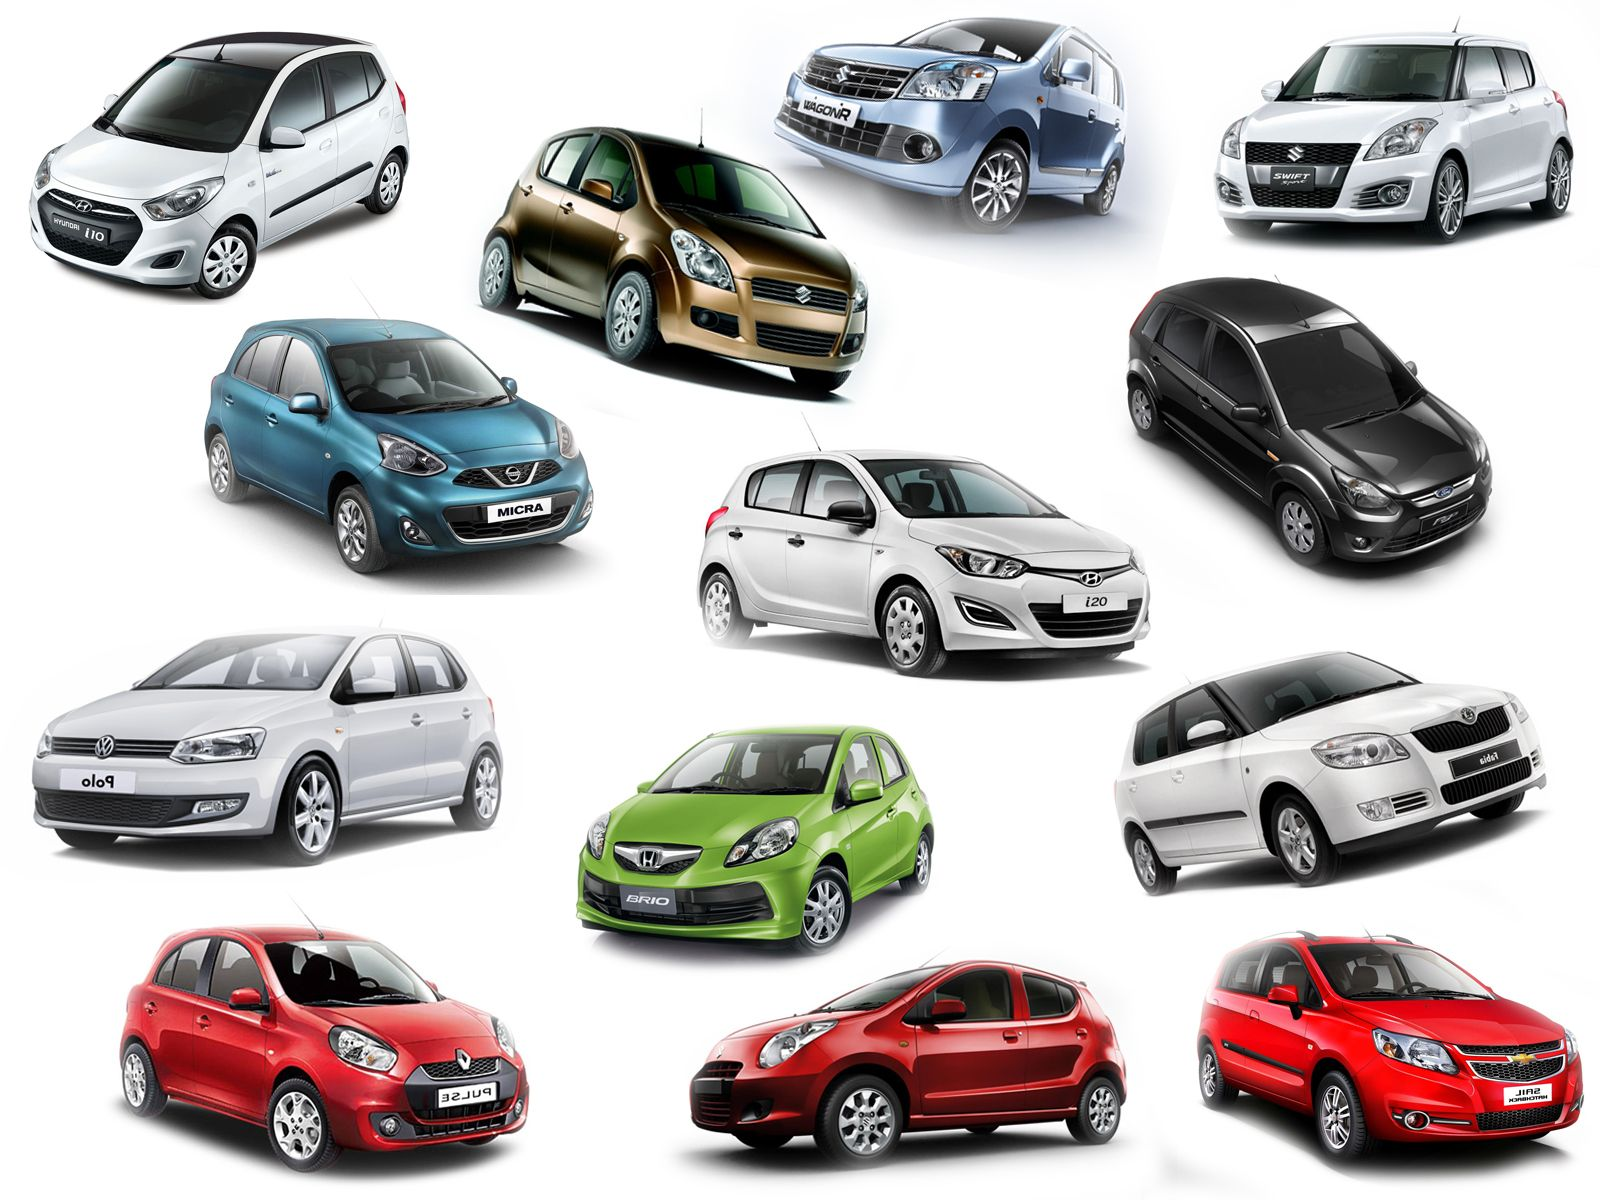 2 Years old Cars in the range of 3 to 5 lacs in India | 2 Years Old ...